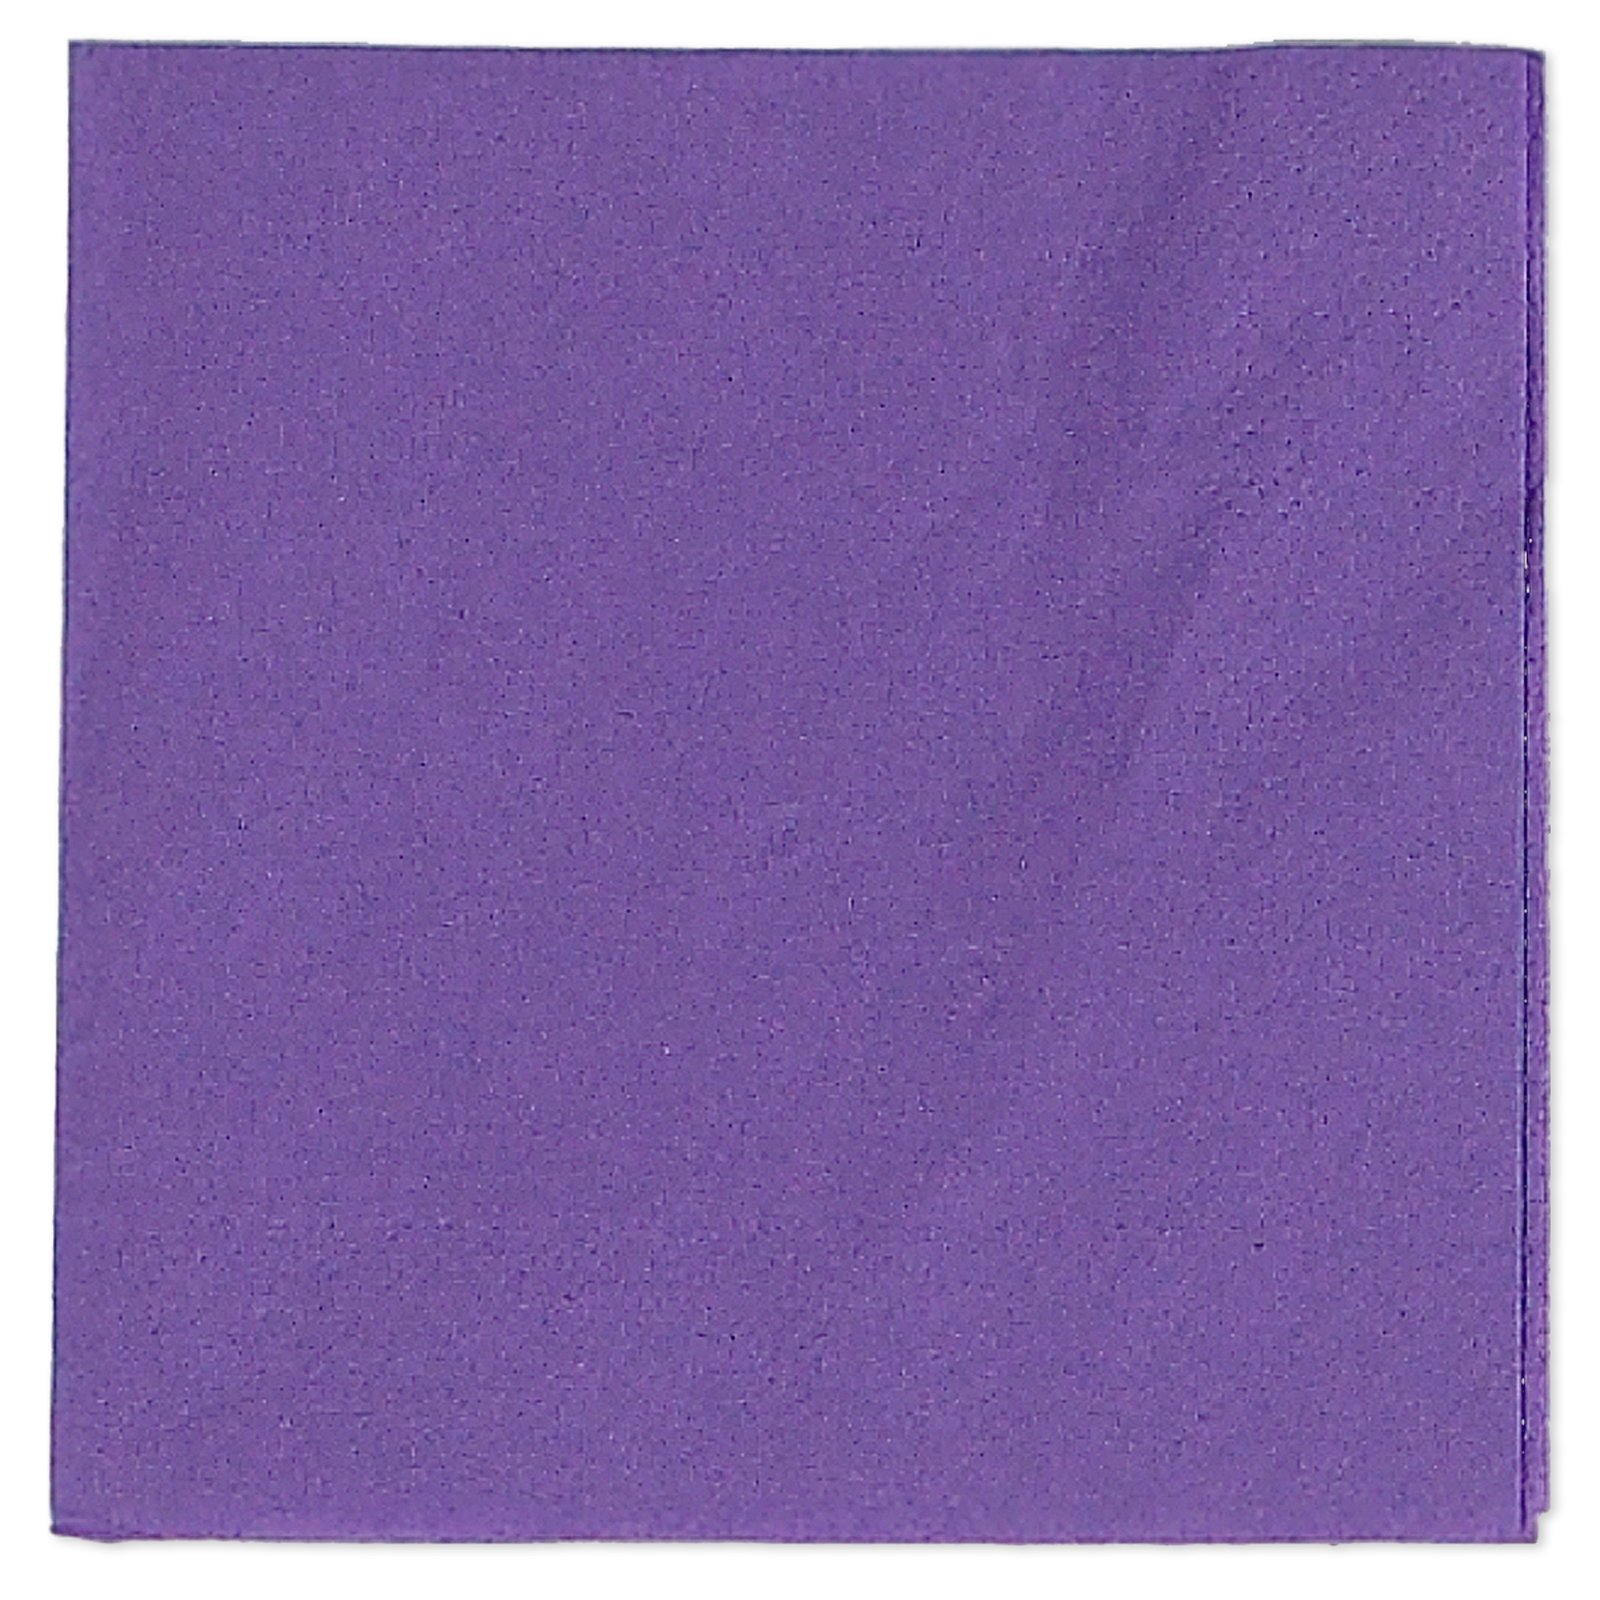 Simply Purple Beverage Napkins (50 count)